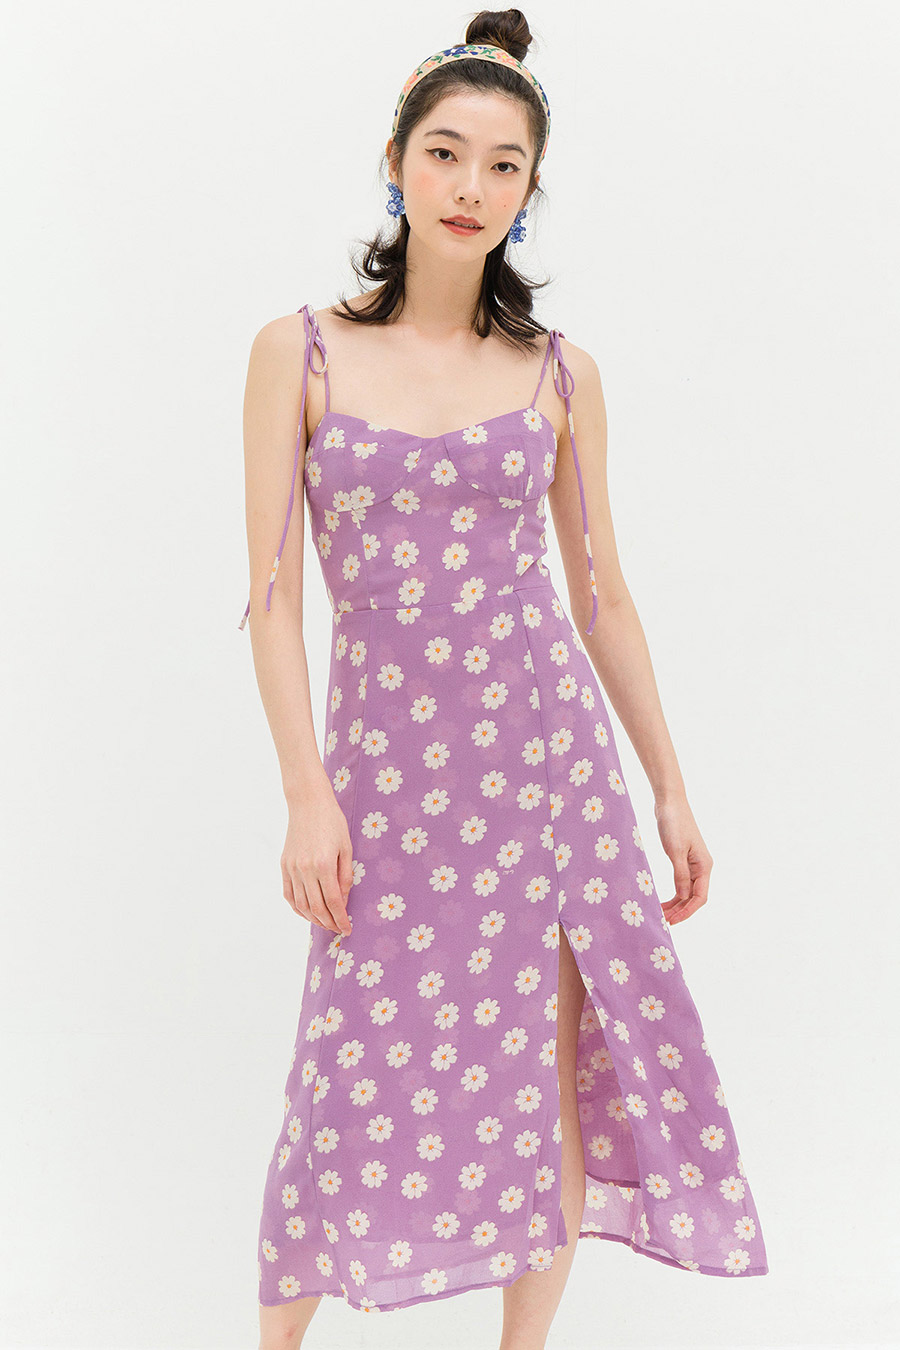 *BO* GRACIE DRESS - LAVENDER DAISY